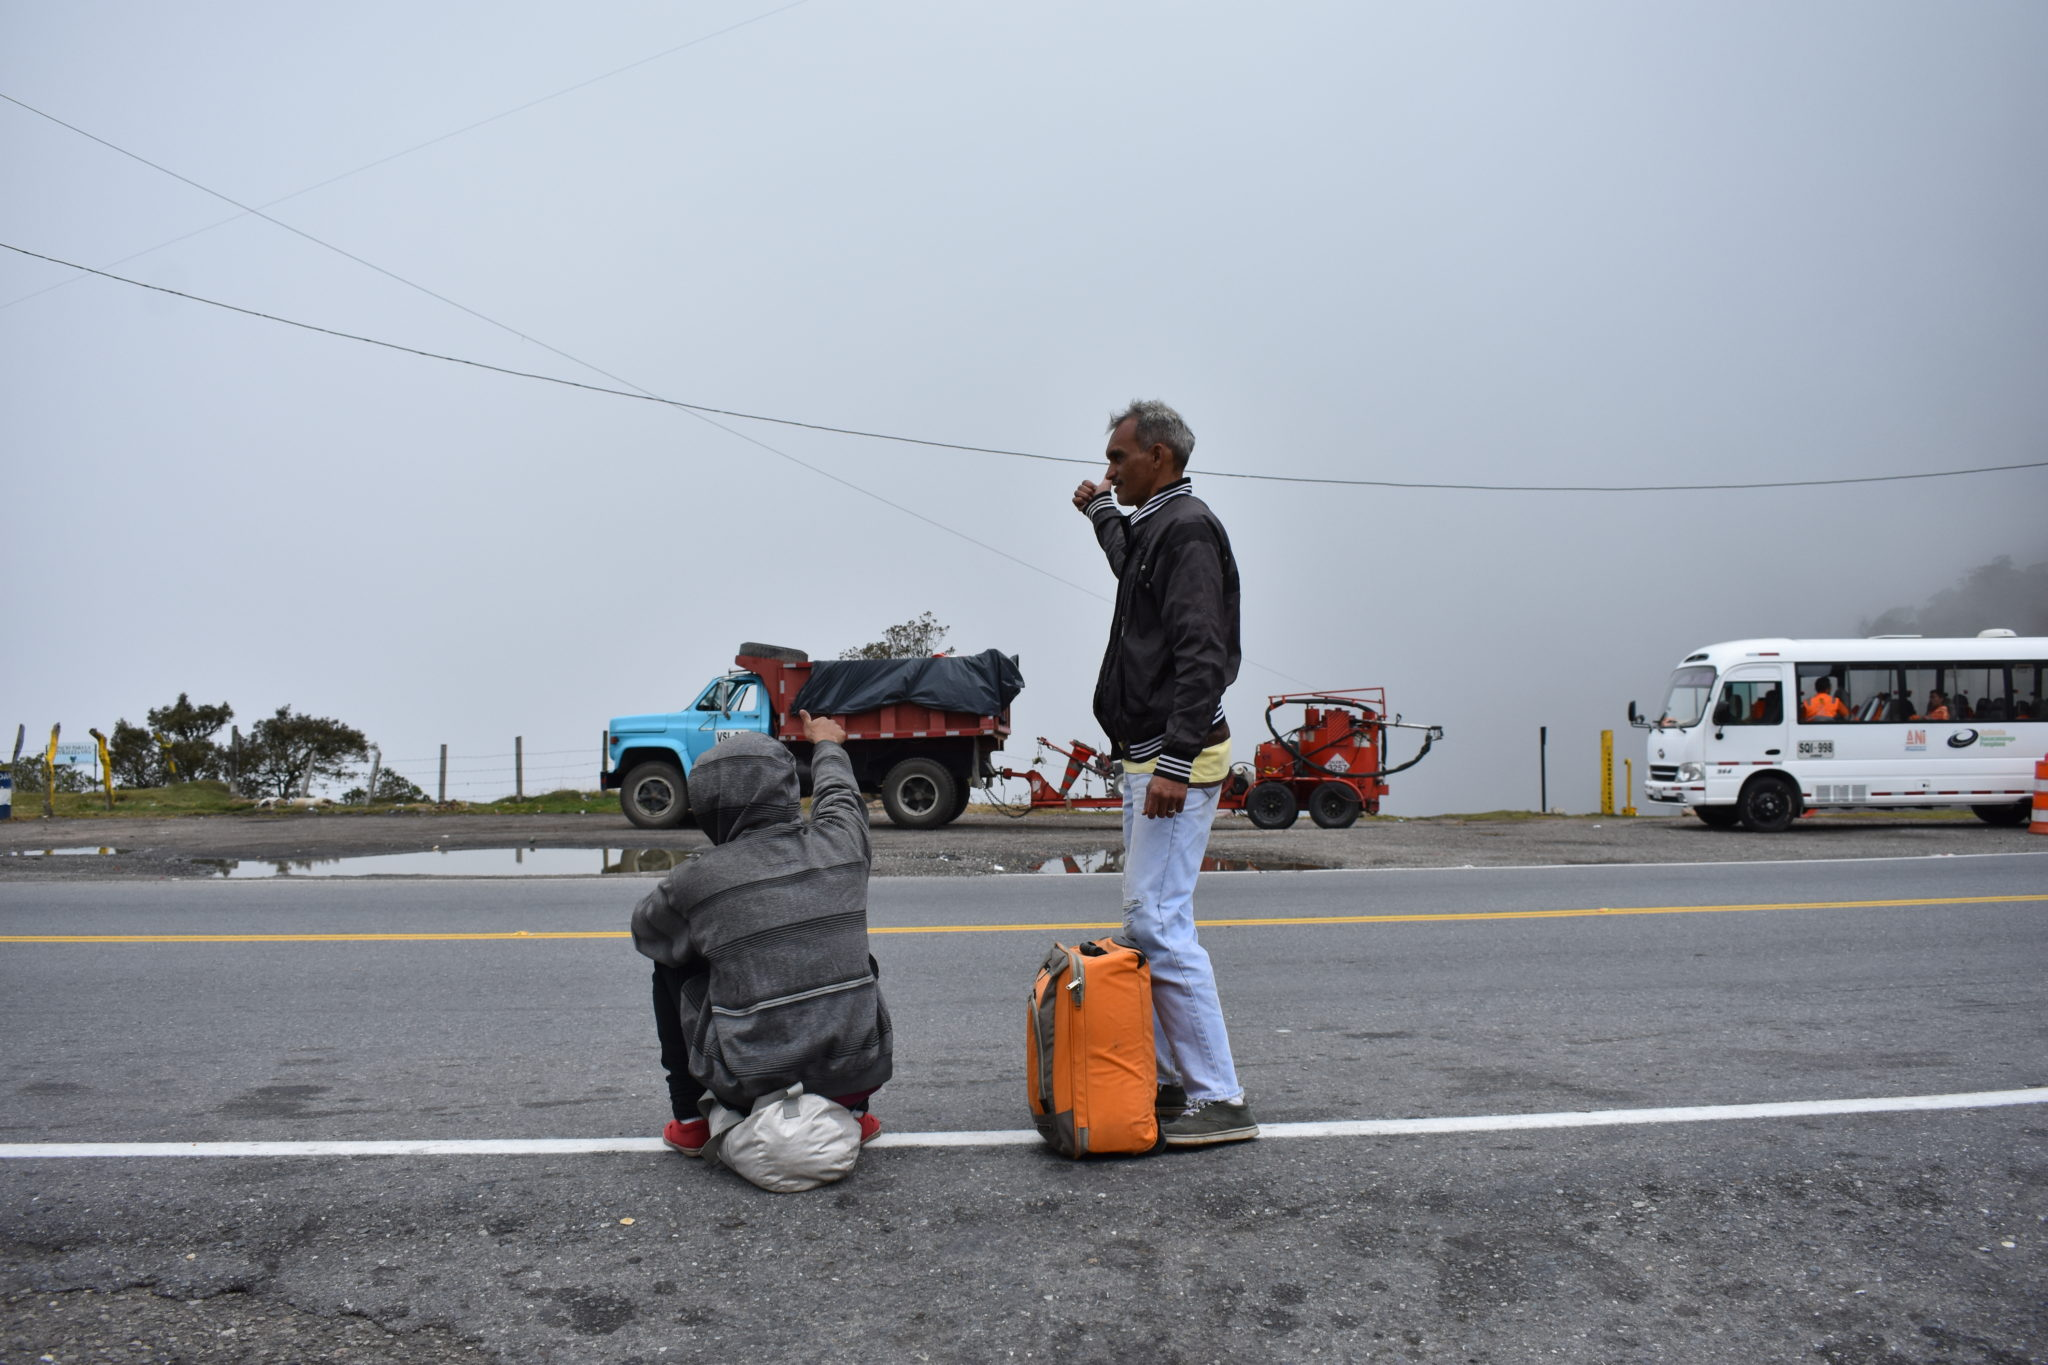 A nation on the move: Venezuelan migrants walk great distances in search of a better future